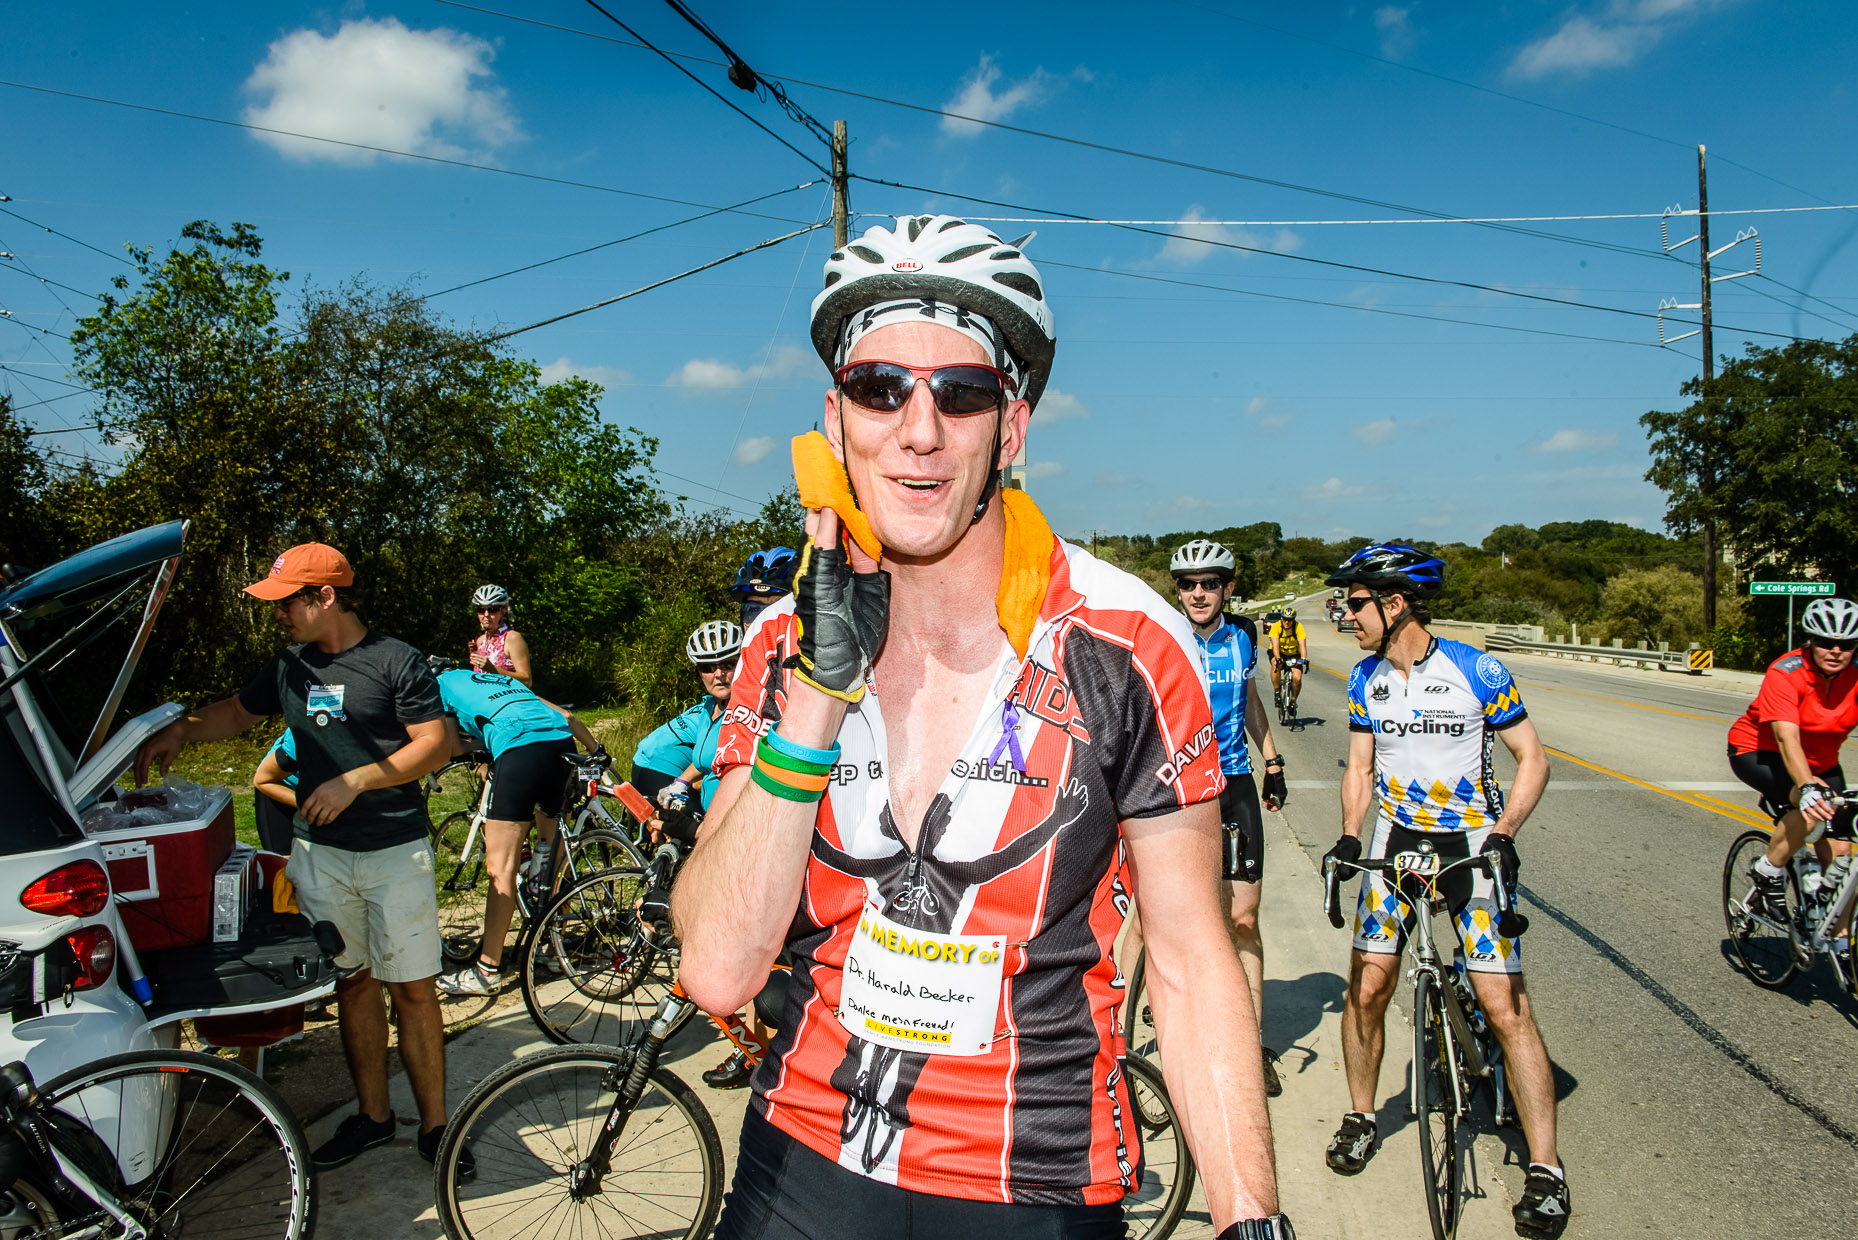 Livestrong-Austin-Commercial-Photographer-car2go-bicyclists-ride.jpg